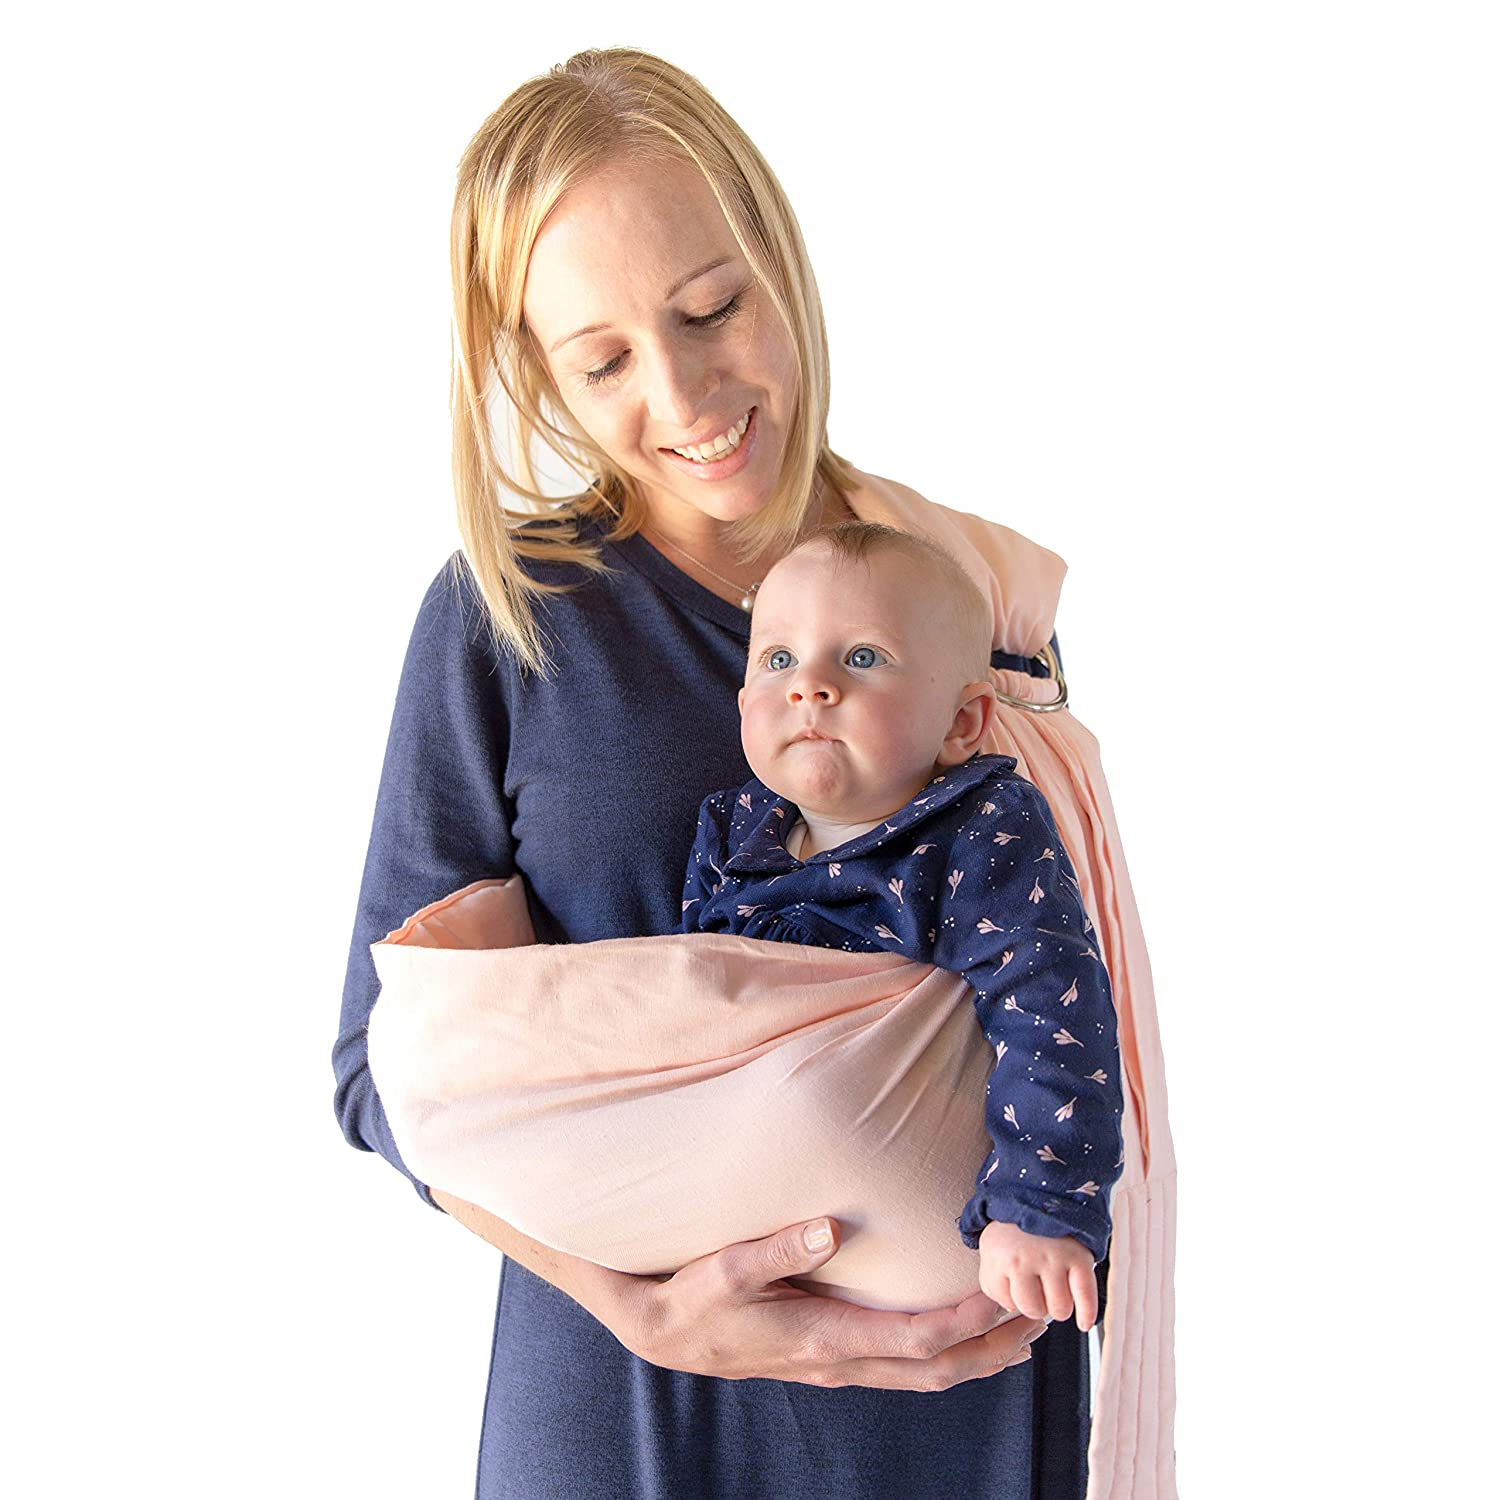 585d6db9dfc Amazon.com   Baby Wrap Carrier Ring Sling   Extra Comfortable Slings and  Wraps for Easy Wearing and Carrying of Babies